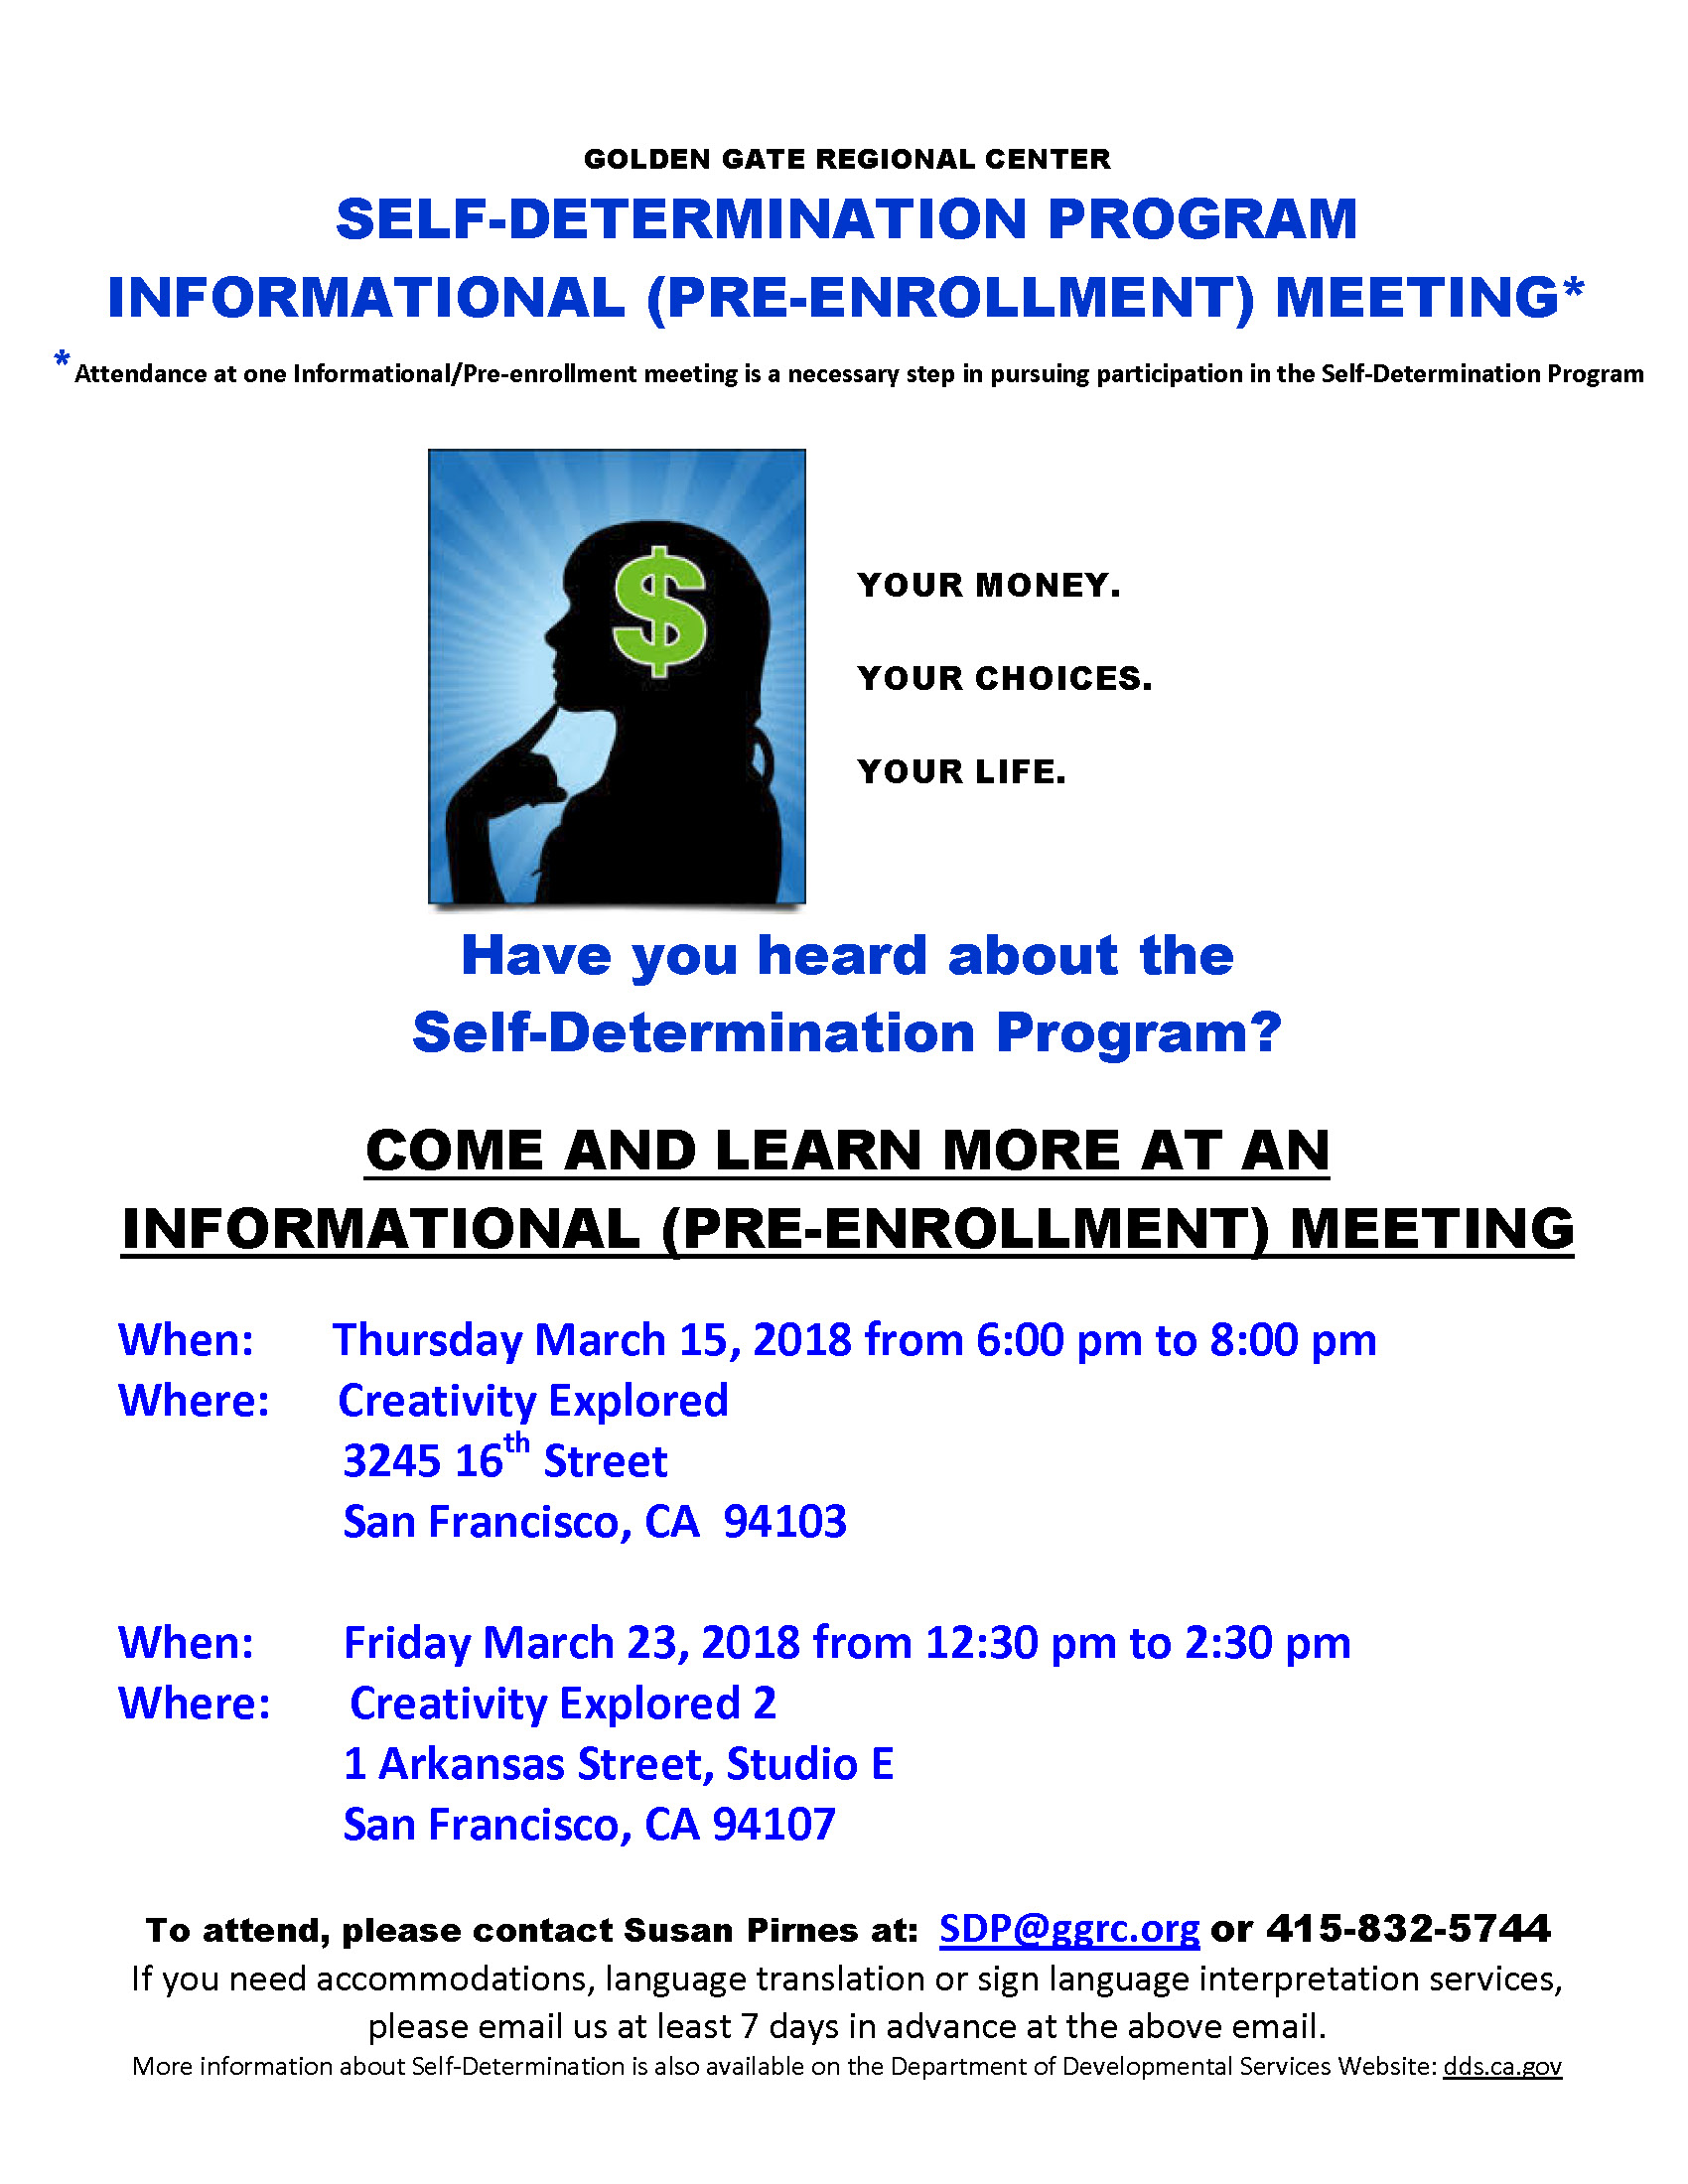 GOLDEN GATE REGIONAL CENTER SELF-DETERMINATION PROGRAM INFORMATIONAL (PRE-ENROLLMENT) MEETING